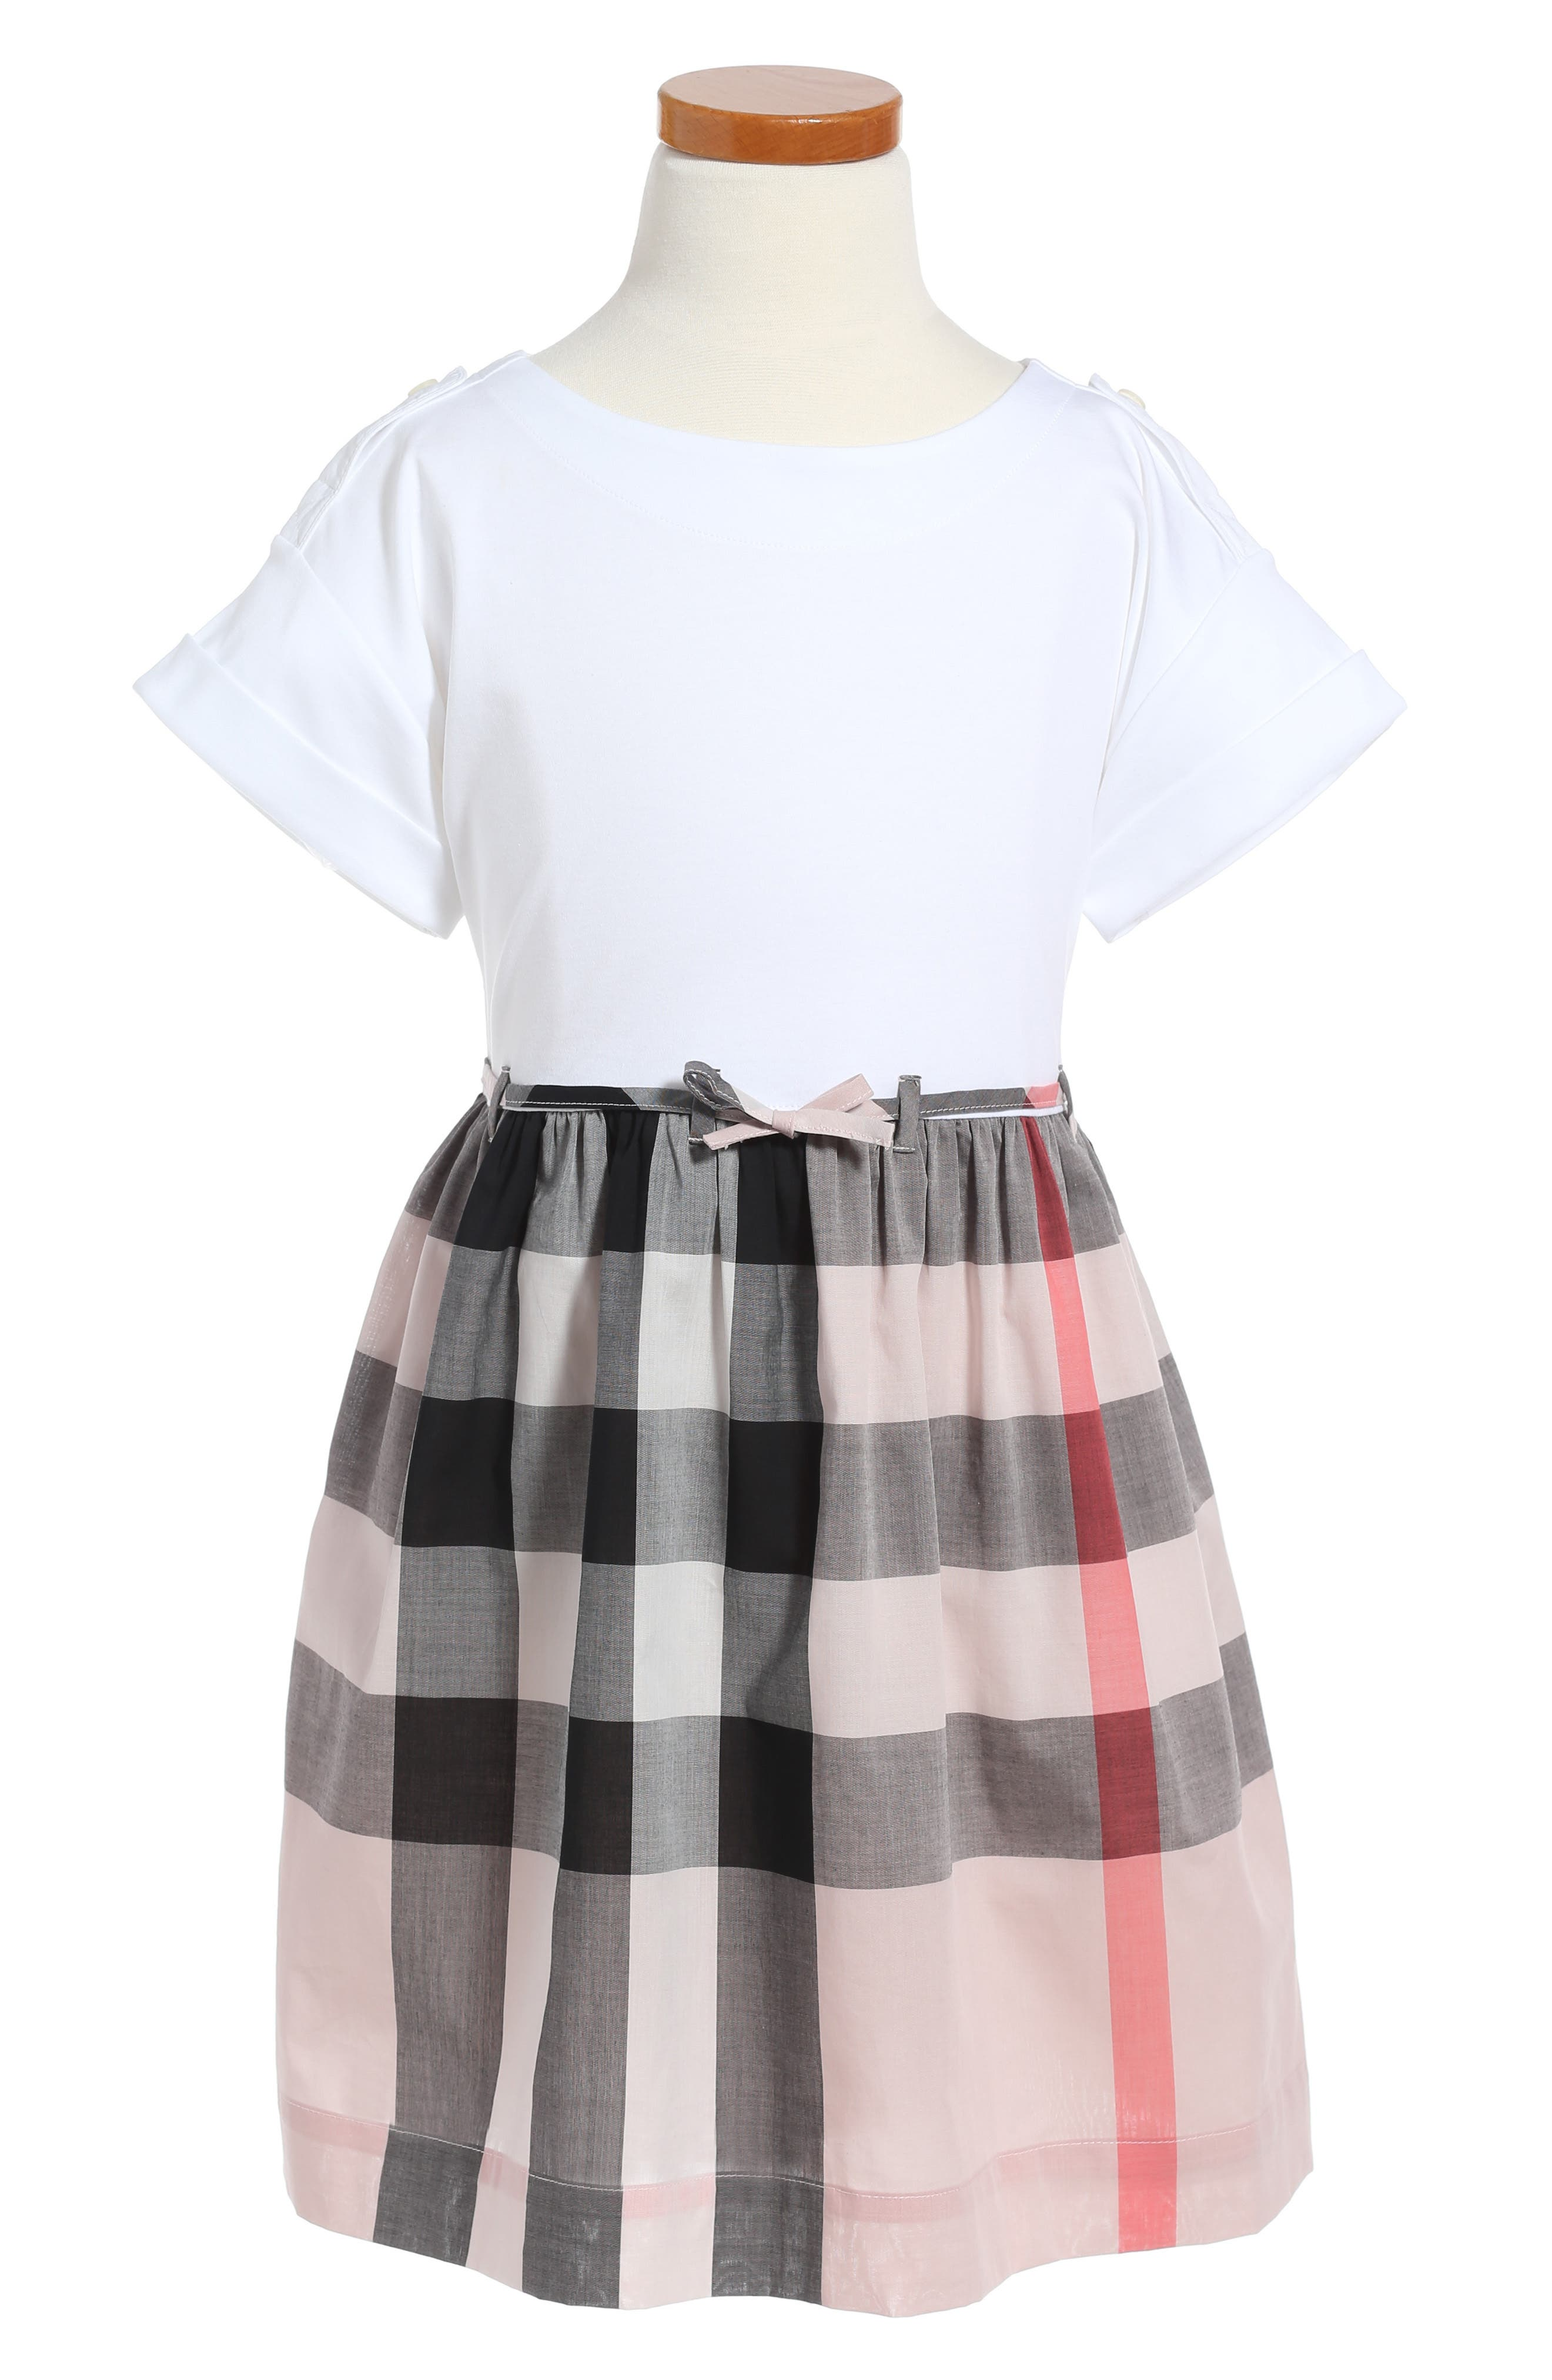 Burberry Rhonda Dress (Little Girls & Big Girls)